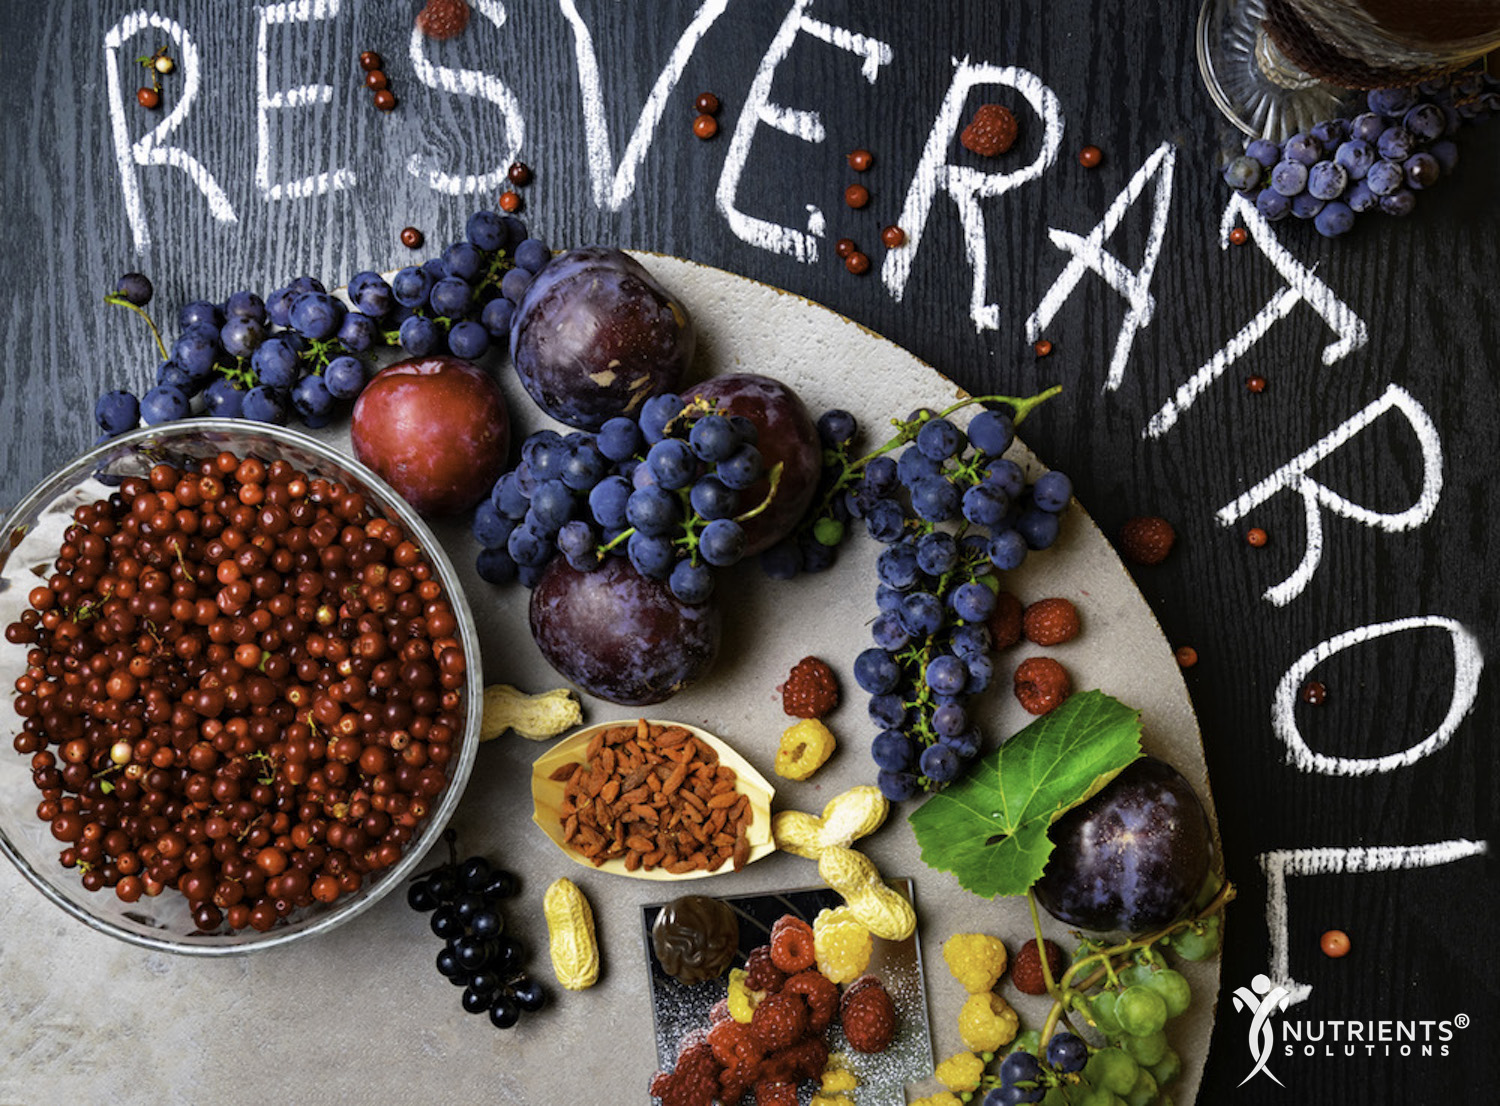 Resveratrol: 11 Benefits of the Medicinal Polyphenol from Red Wine